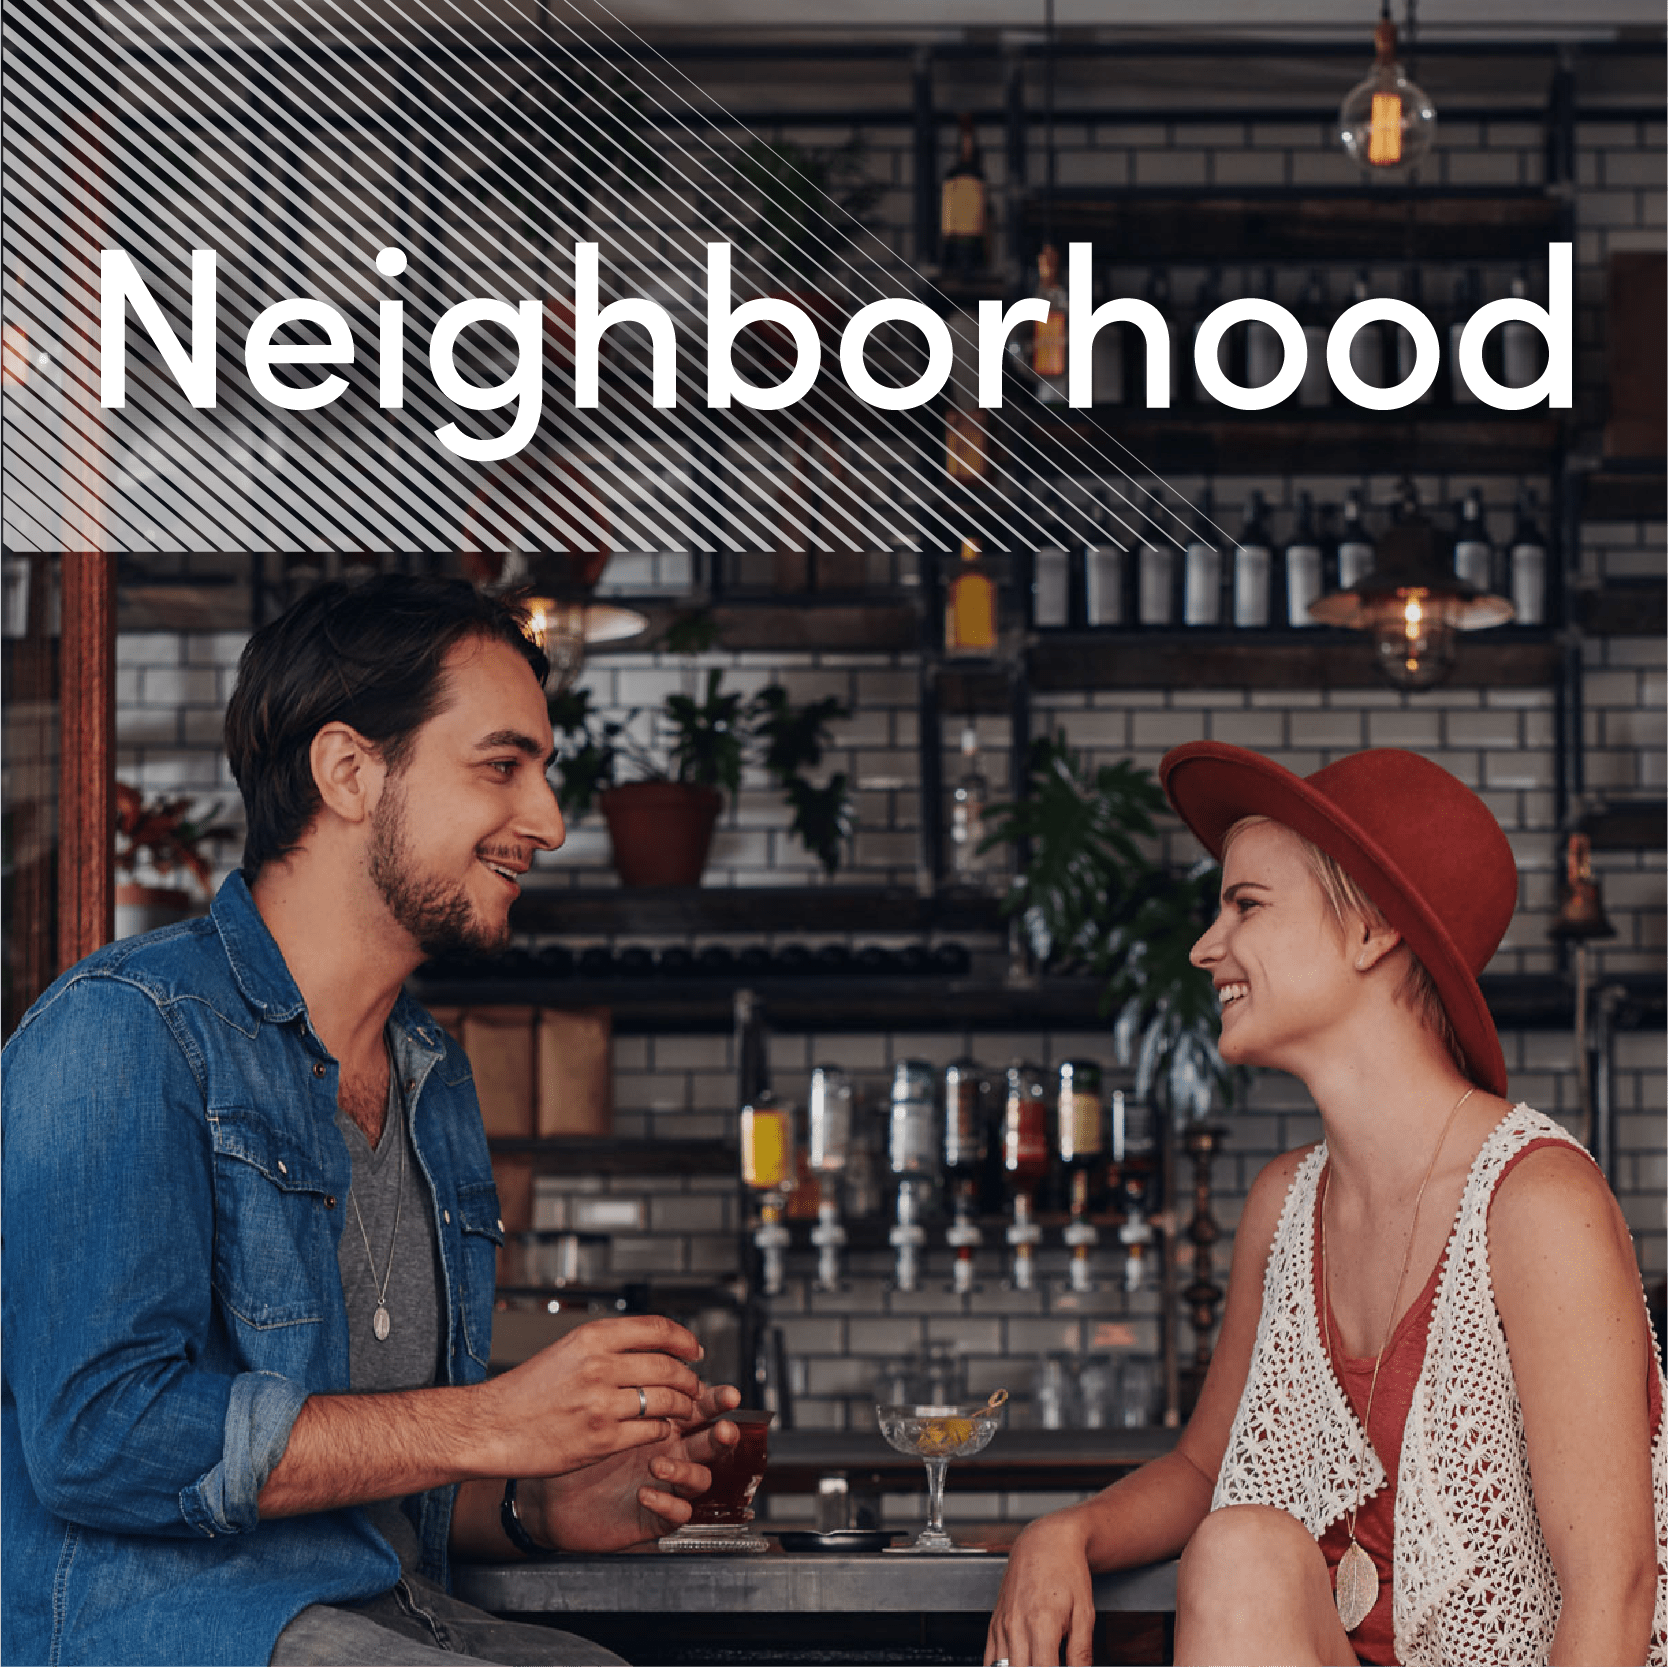 Link to neighborhood page of The Hawthorne in Carmichael, California